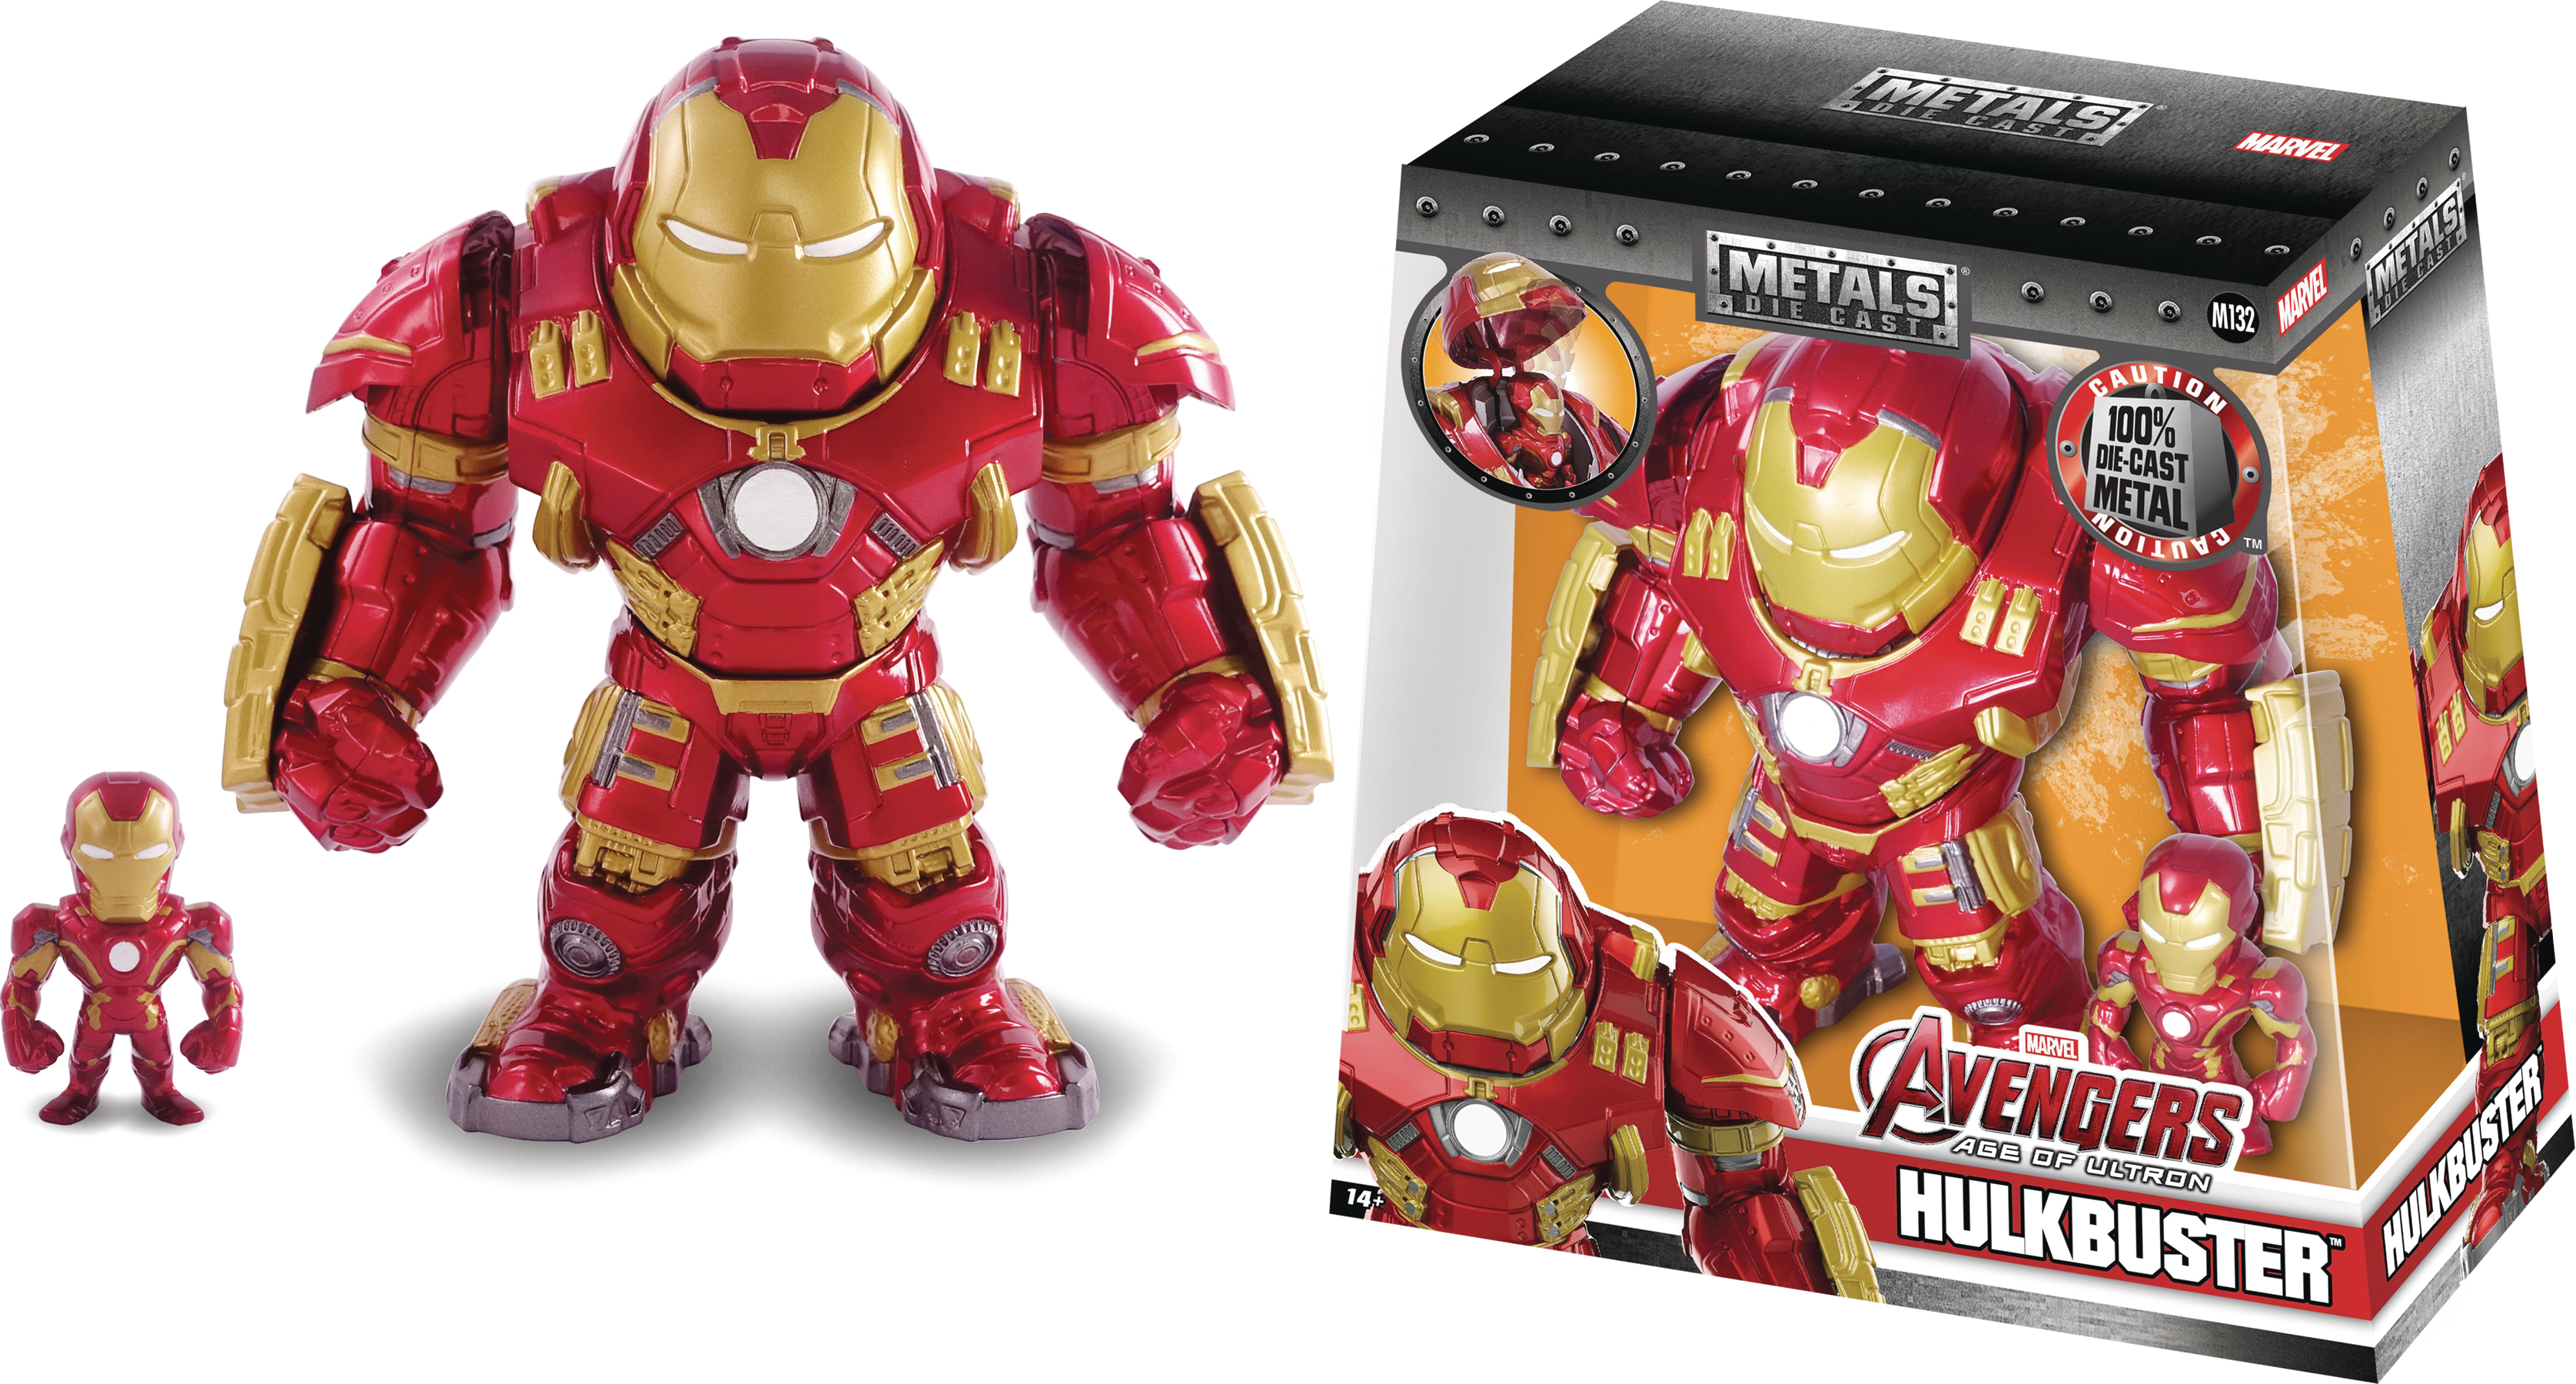 METALS MARVEL CIVIL WAR HULKBUSTER 6IN DIE-CAST FIG